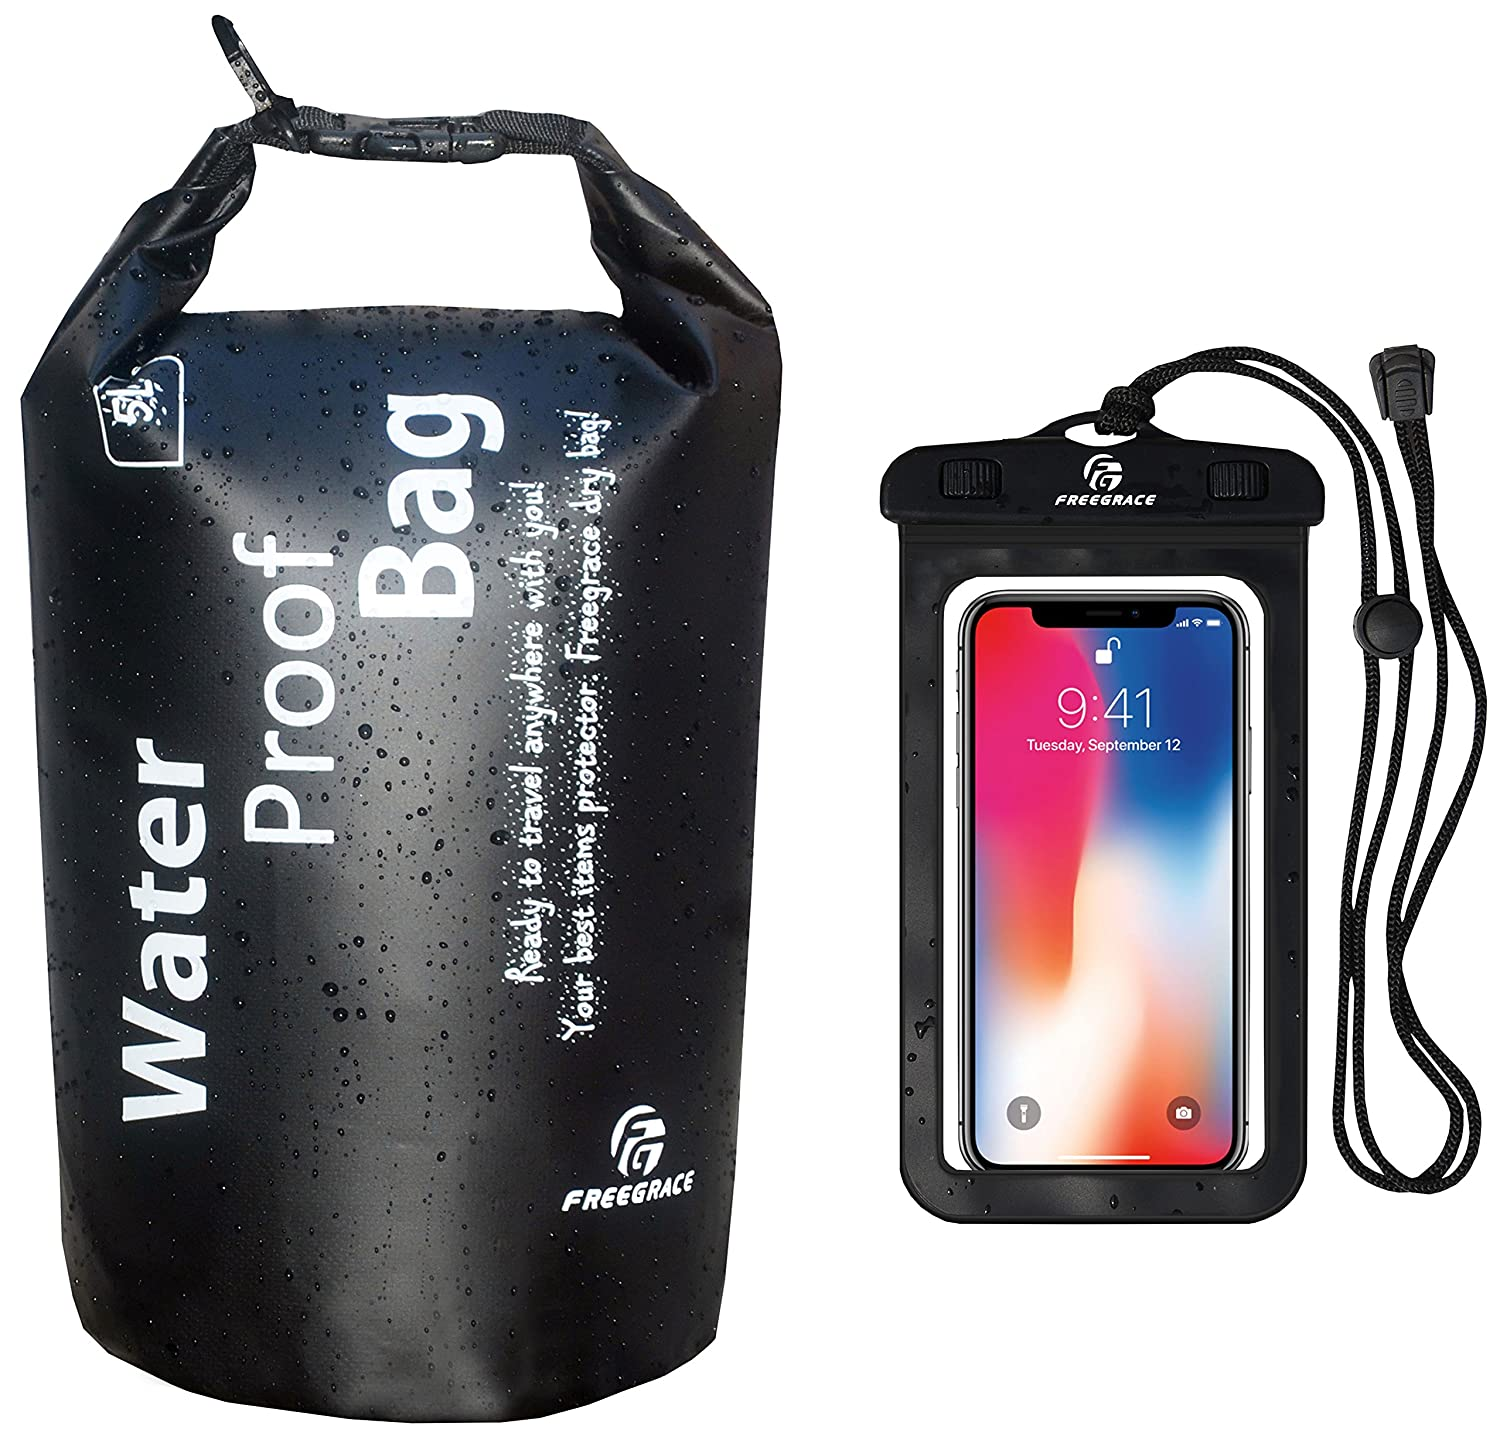 12c5b03cc0 Freegrace Waterproof Dry Bag - Lightweight Dry Sack with Seals and  Waterproof Case - Float on Water - Keeps Gear Dry for Kayaking